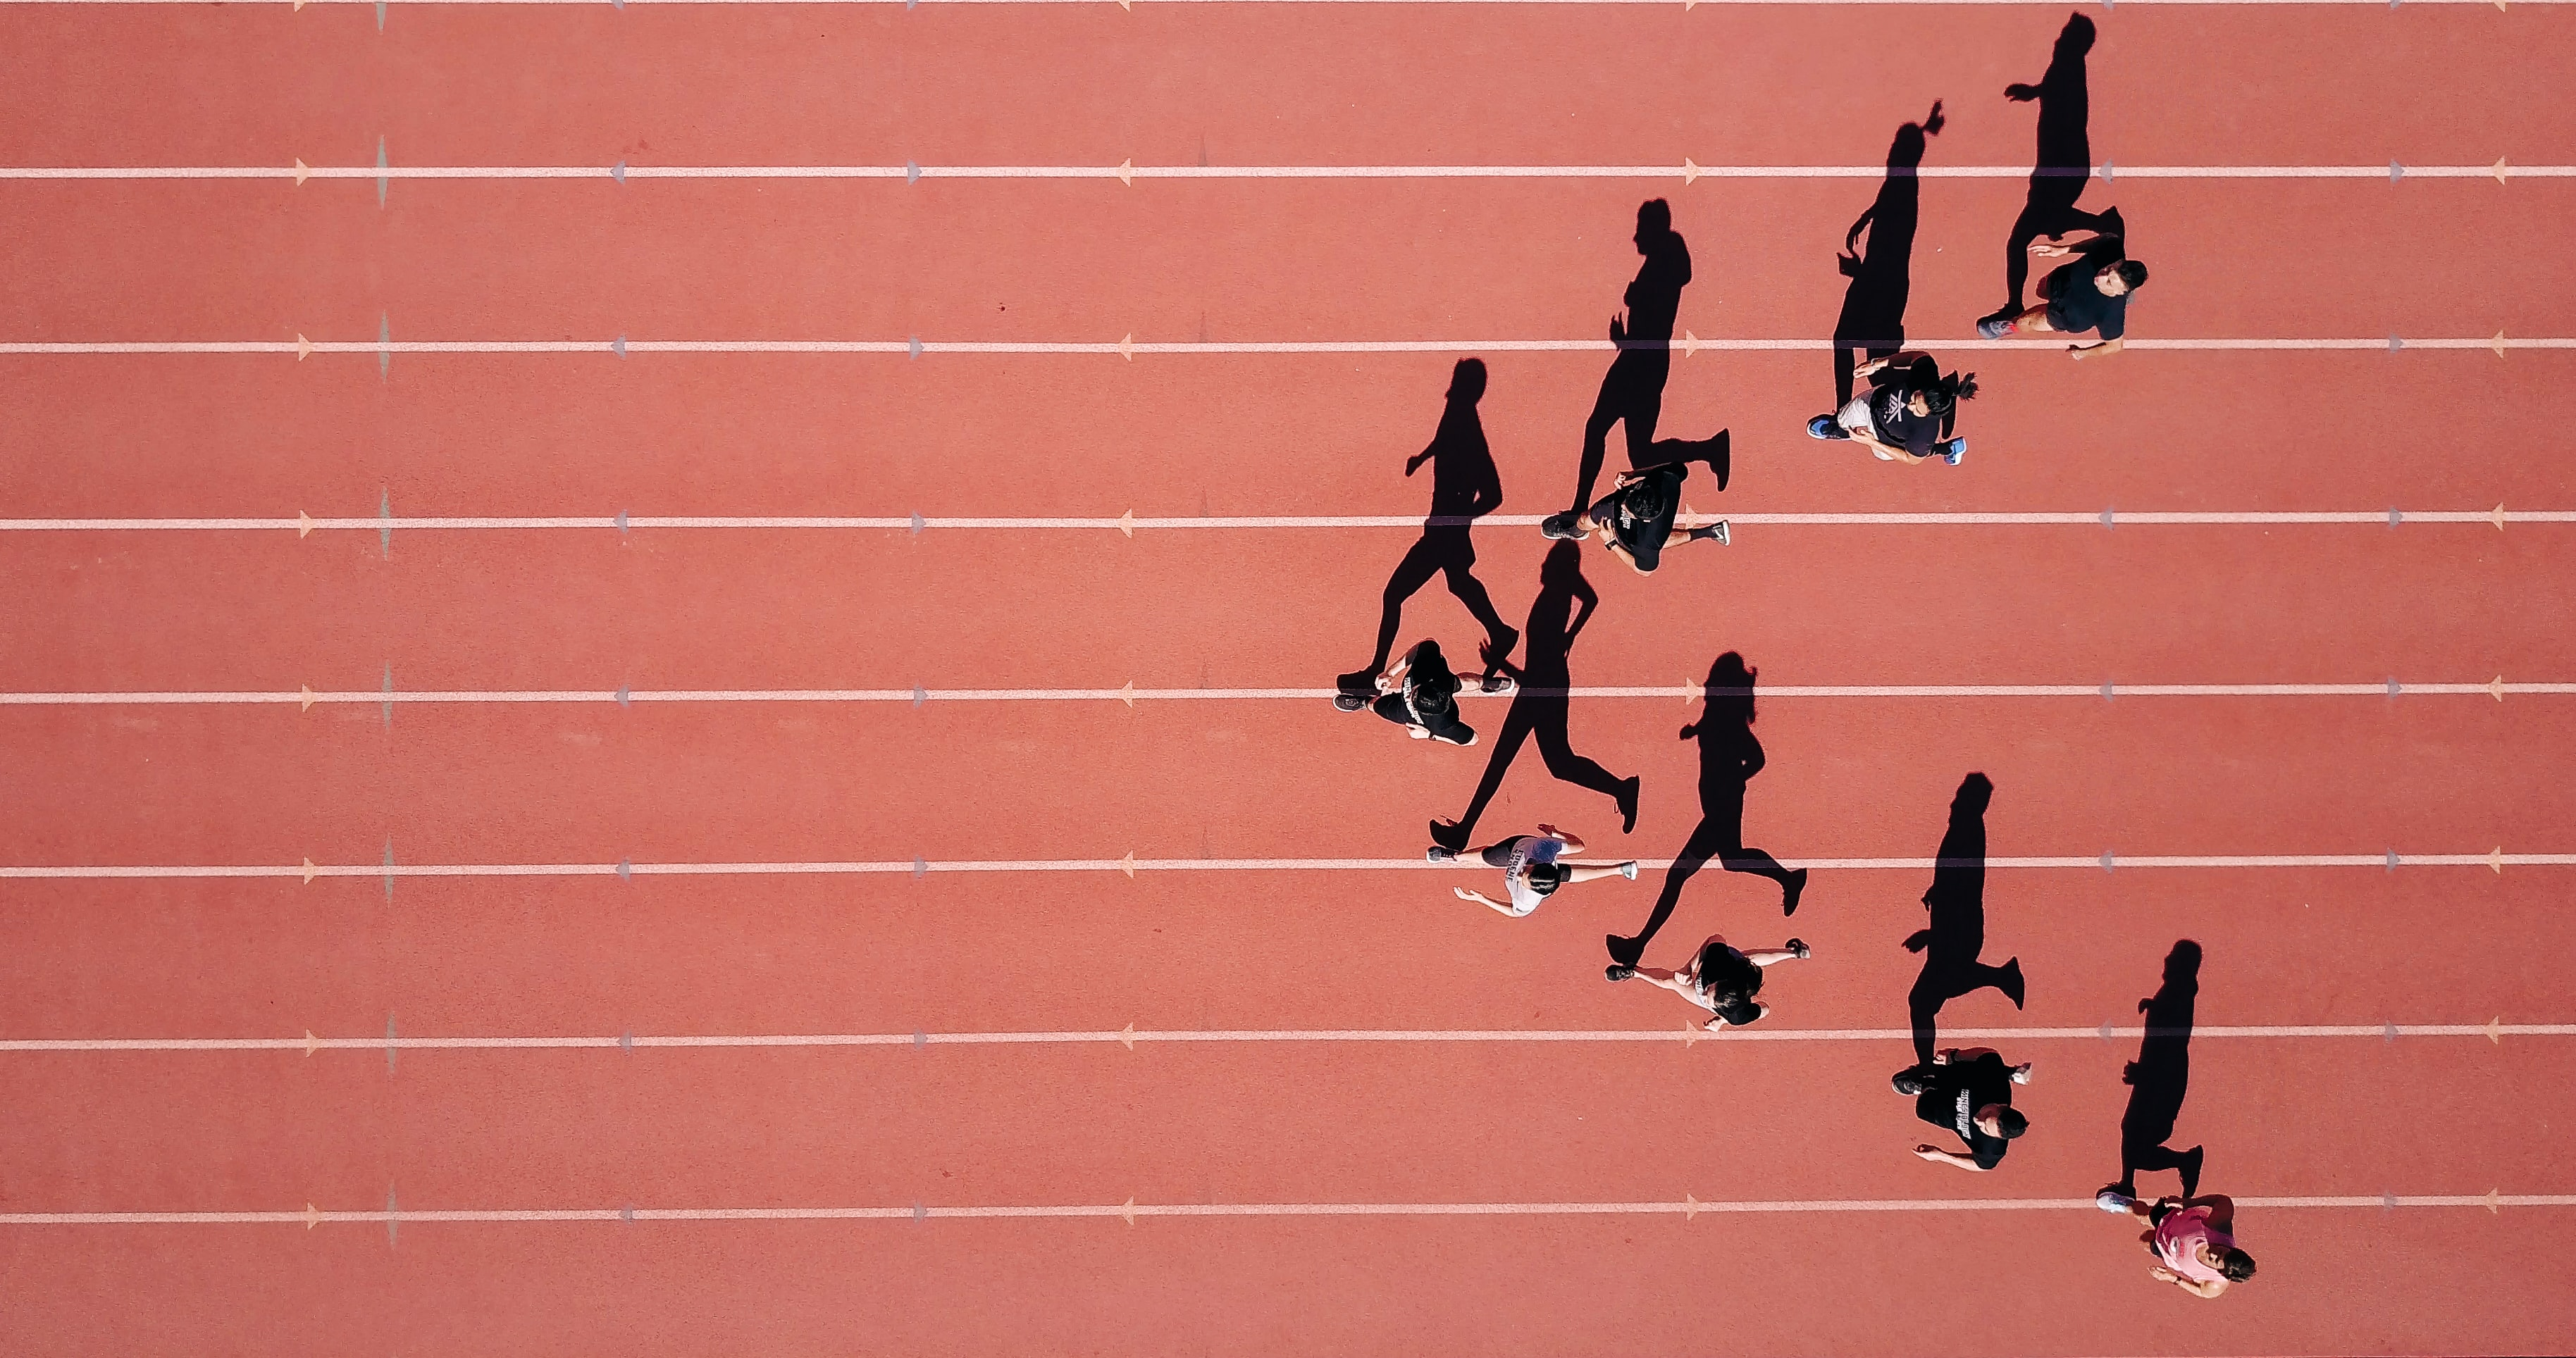 A drone shot of runners casting long shadows on the red track